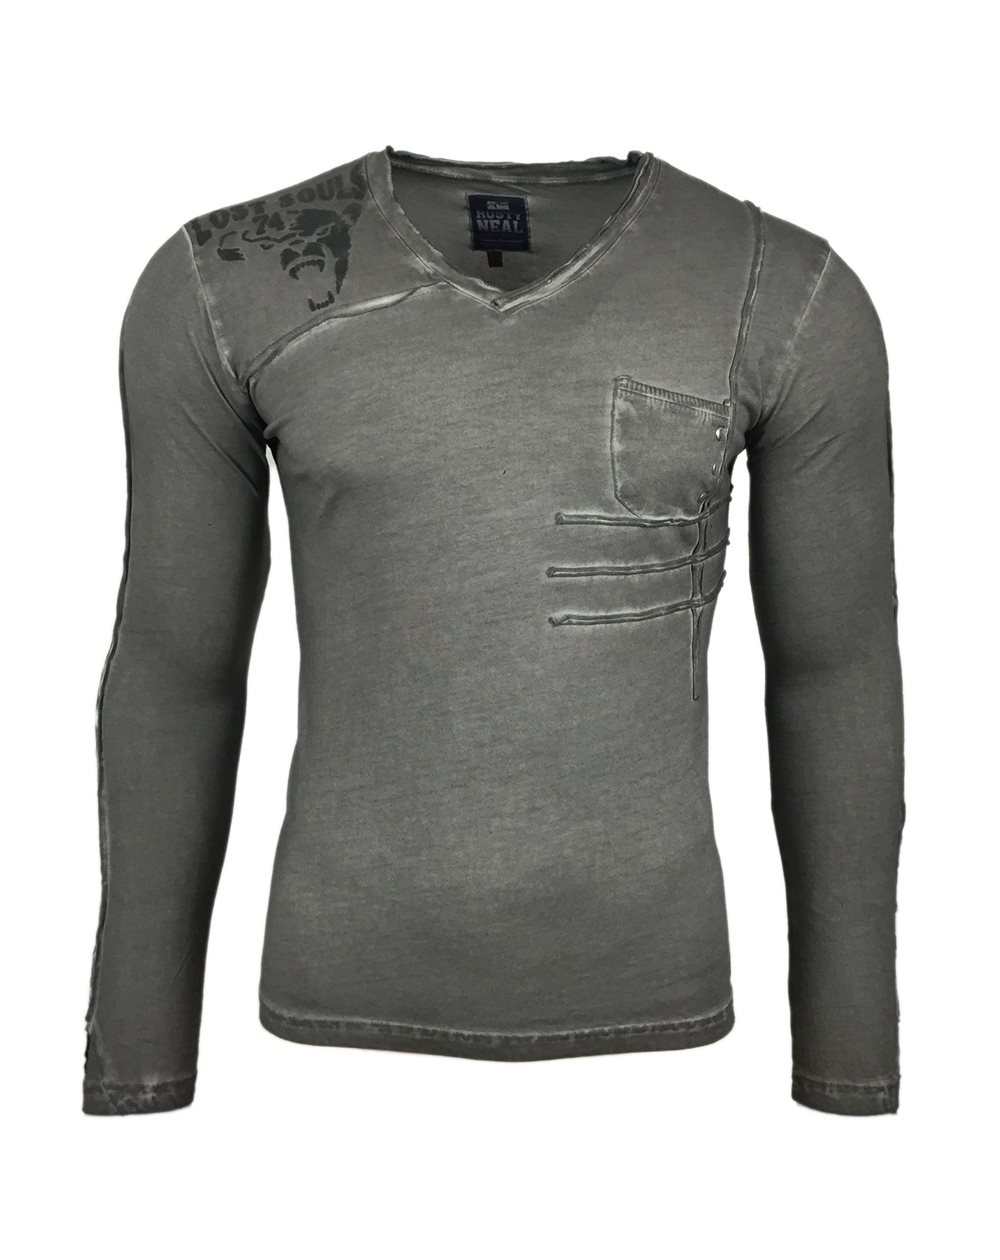 Subliminal Mode - Tee shirt delaver homme manches longues col V SB10104